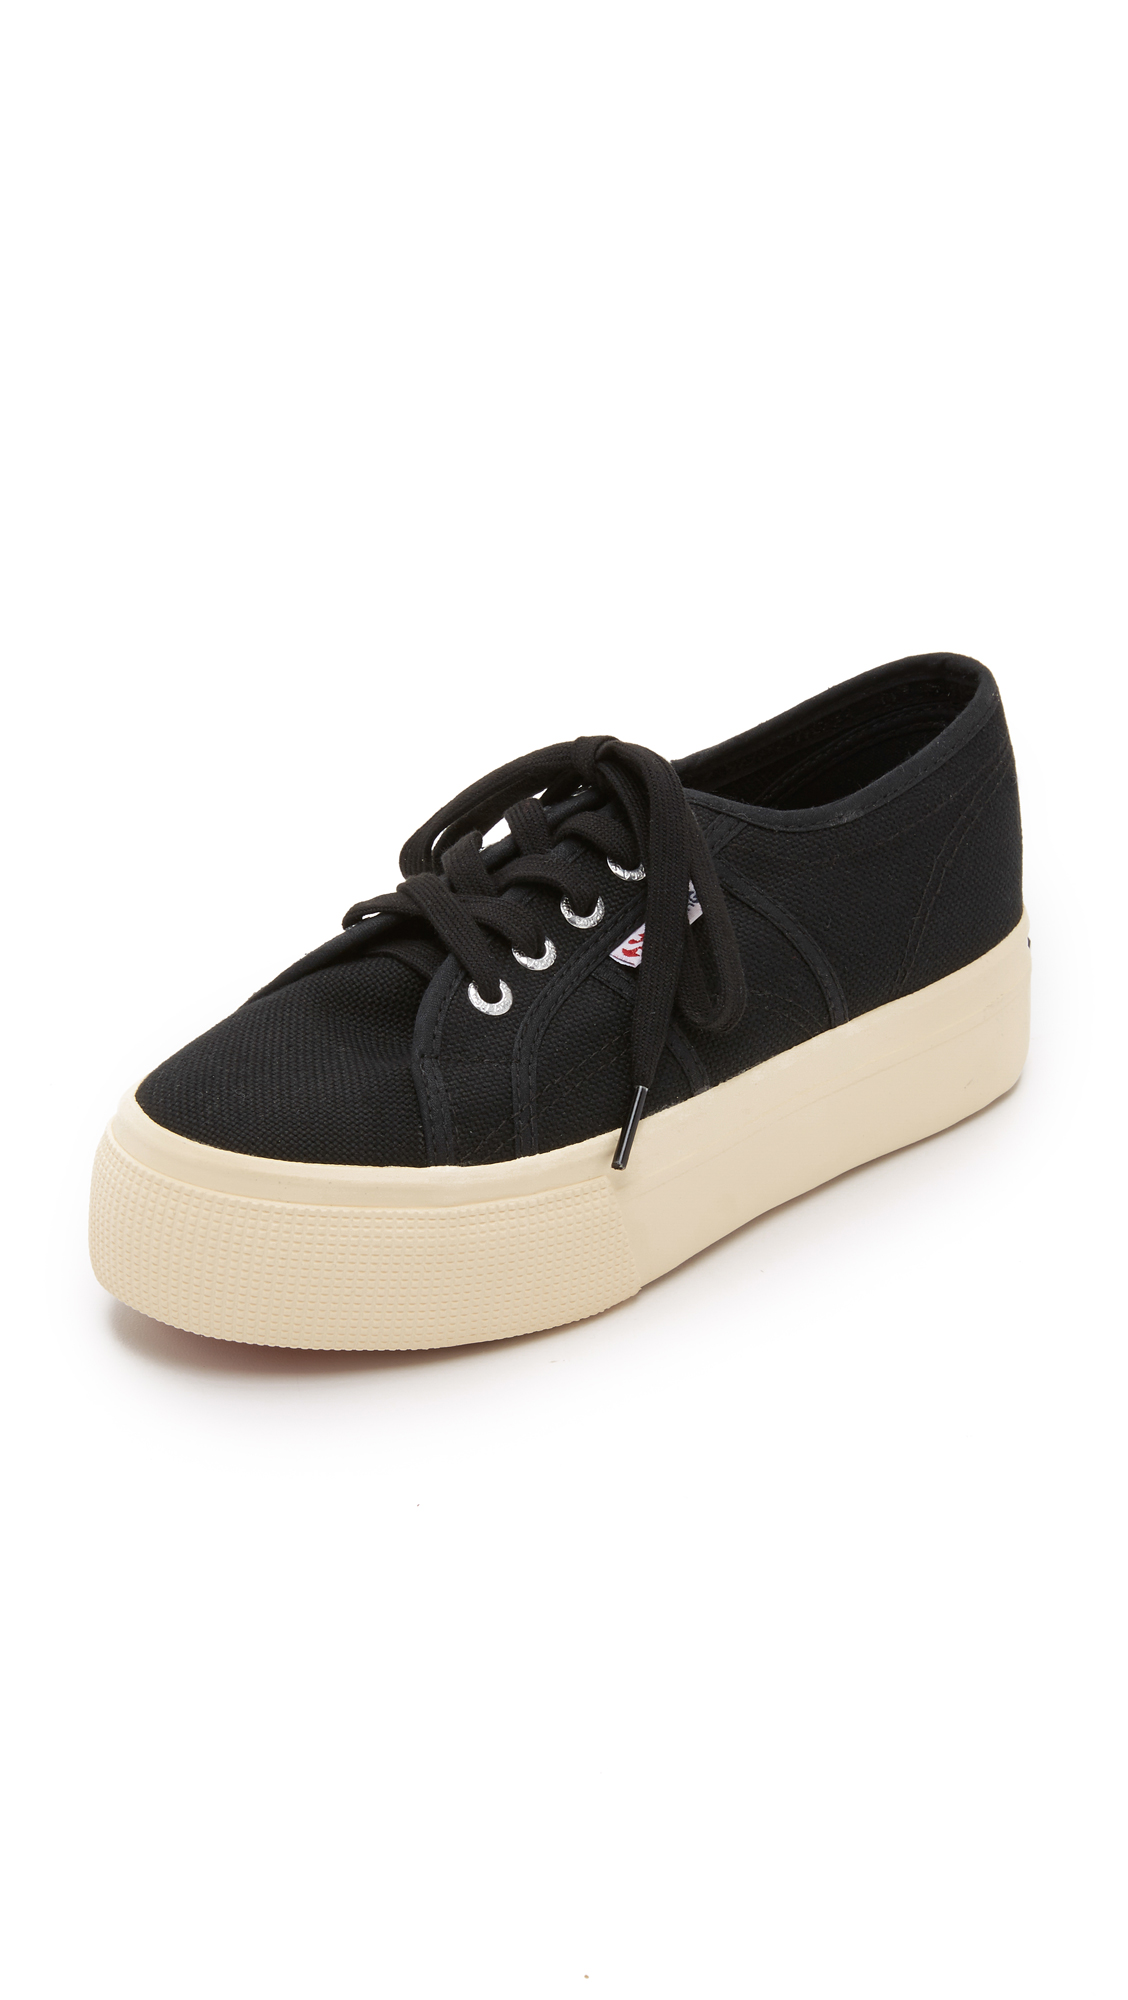 Superga 2790 ACOTW Platform Sneakers - Black